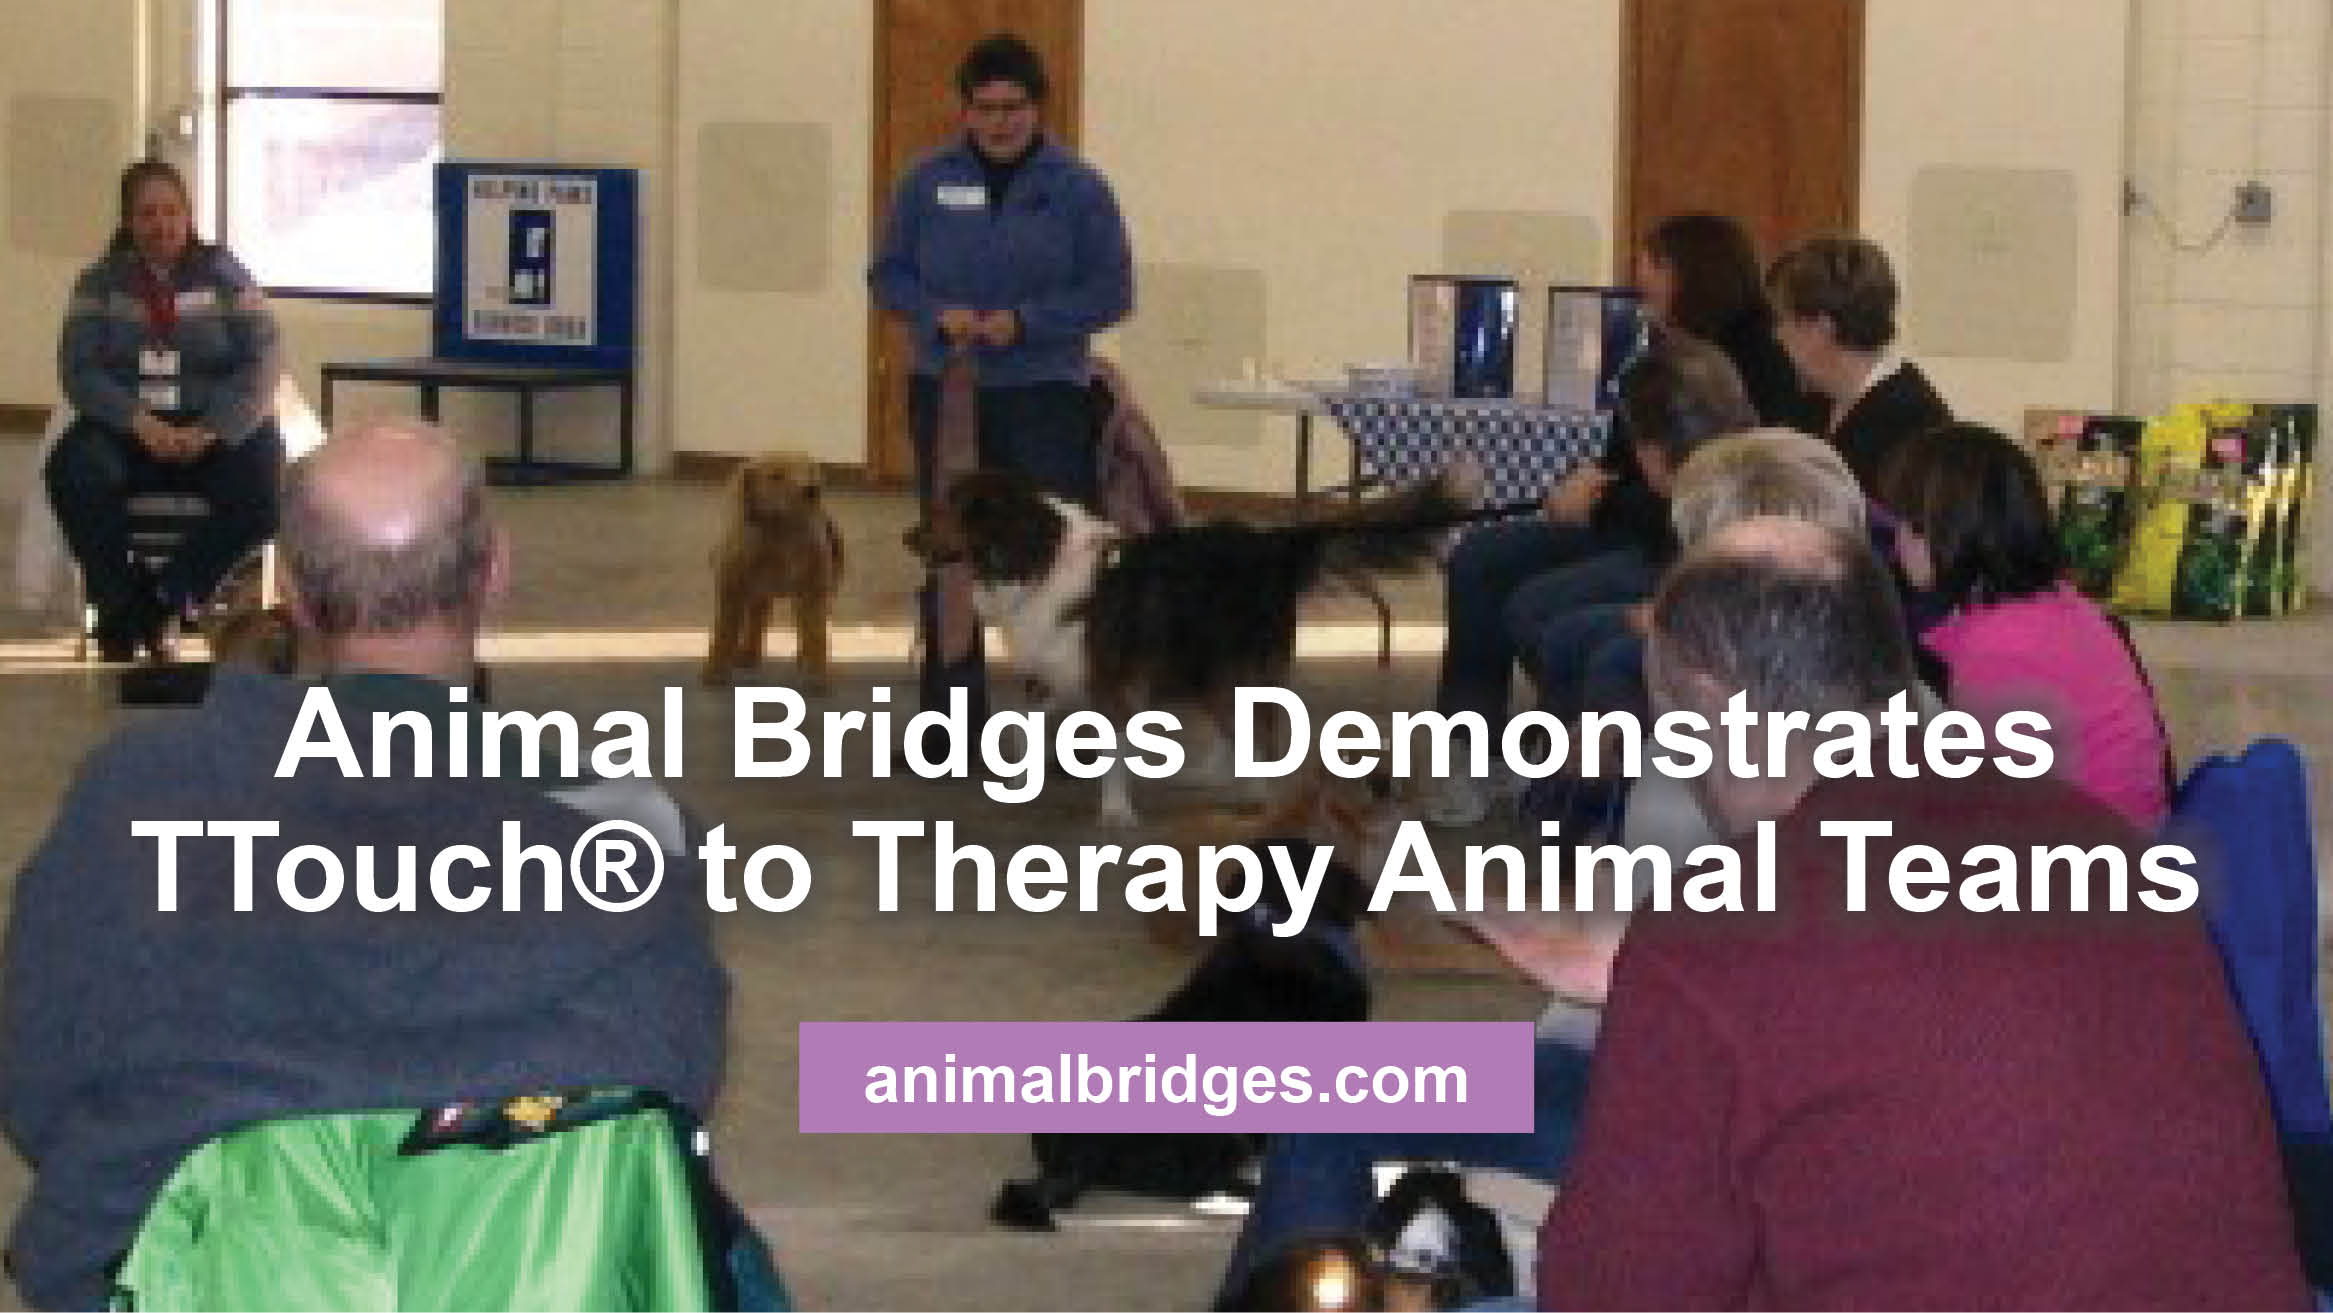 Animal Bridges Demonstrates TTouch® to Therapy Animal Teams